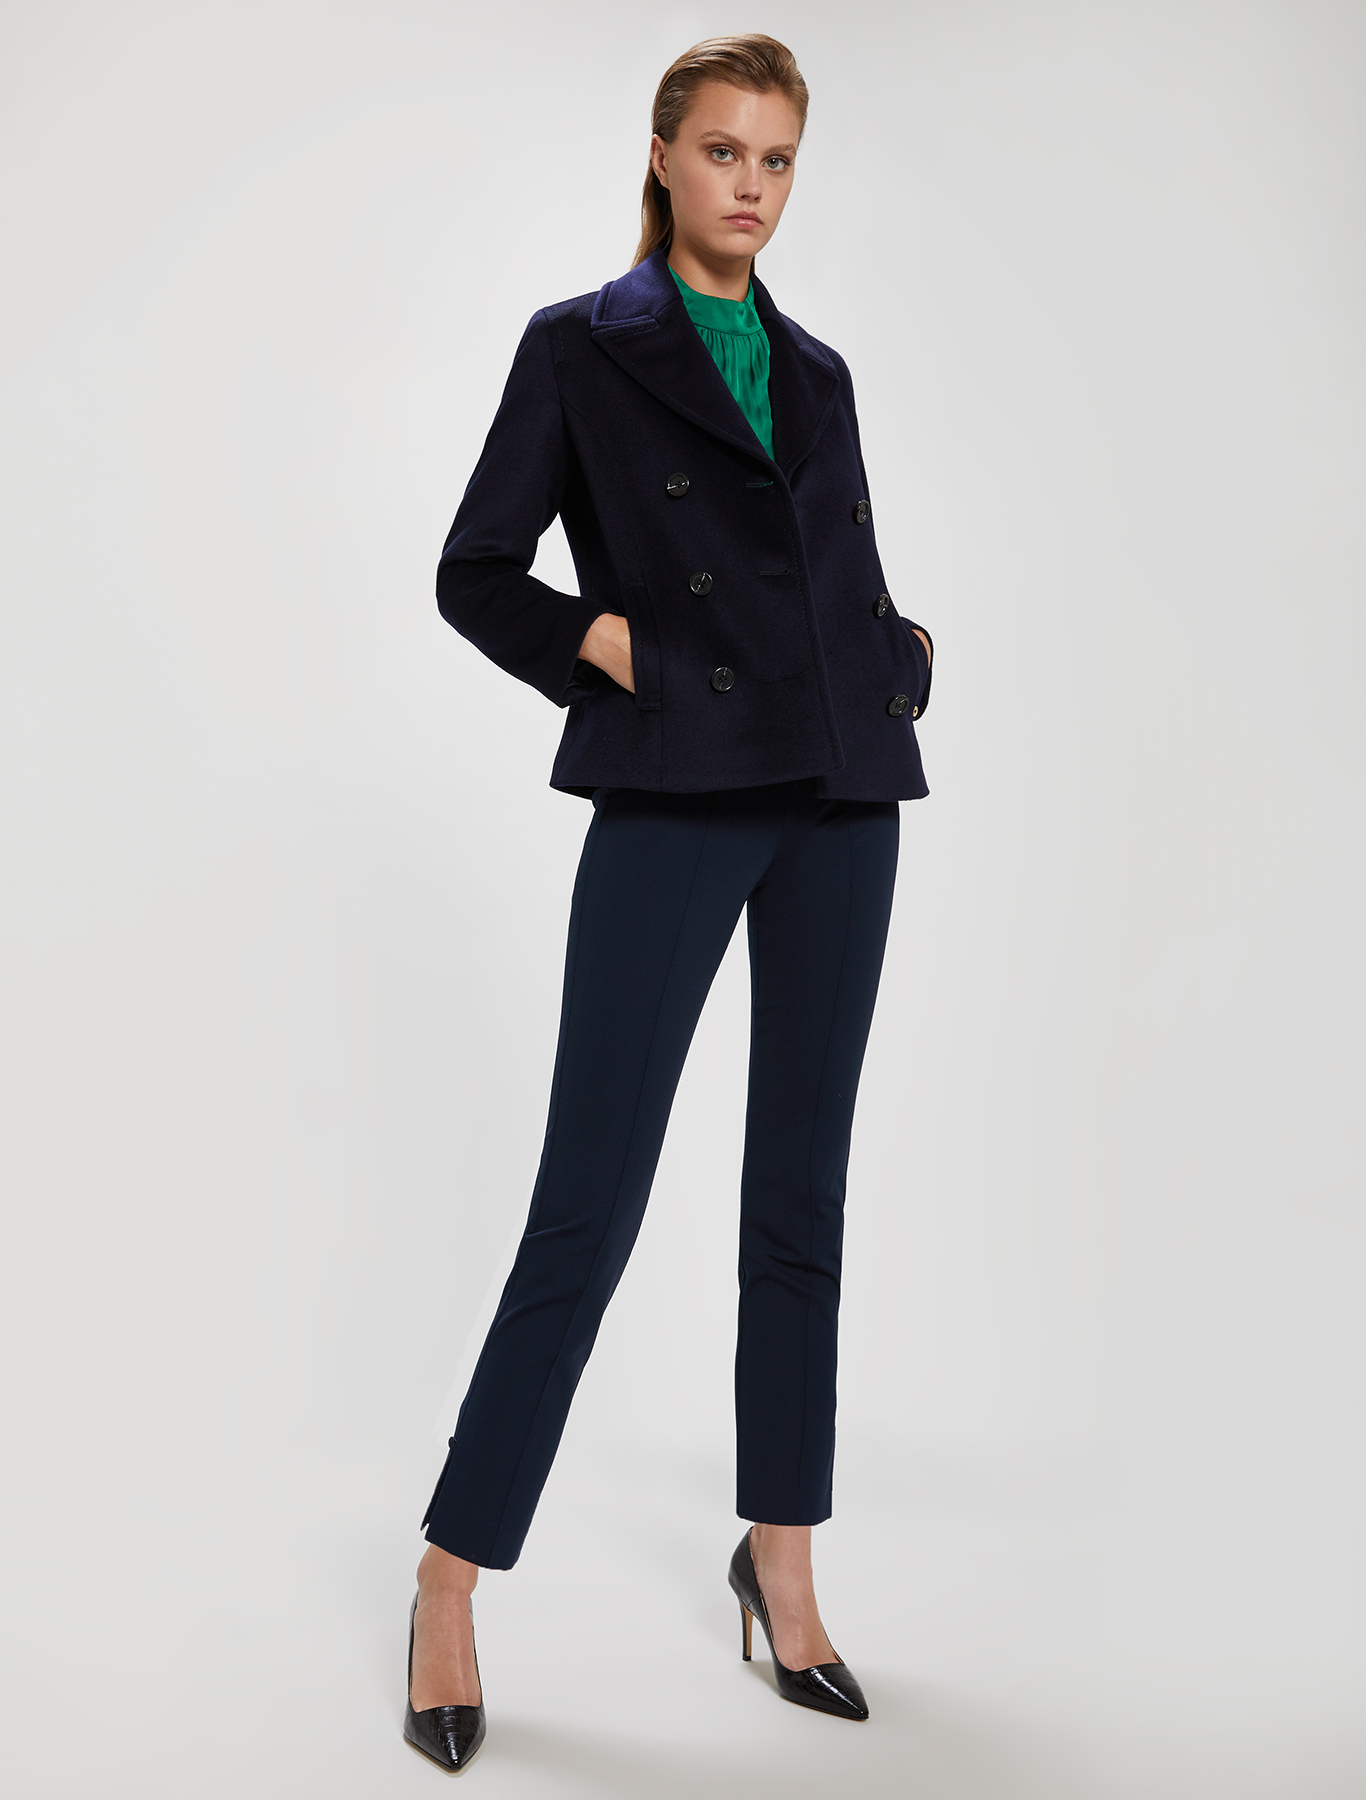 Skinny-fit jersey trousers - navy blue - pennyblack